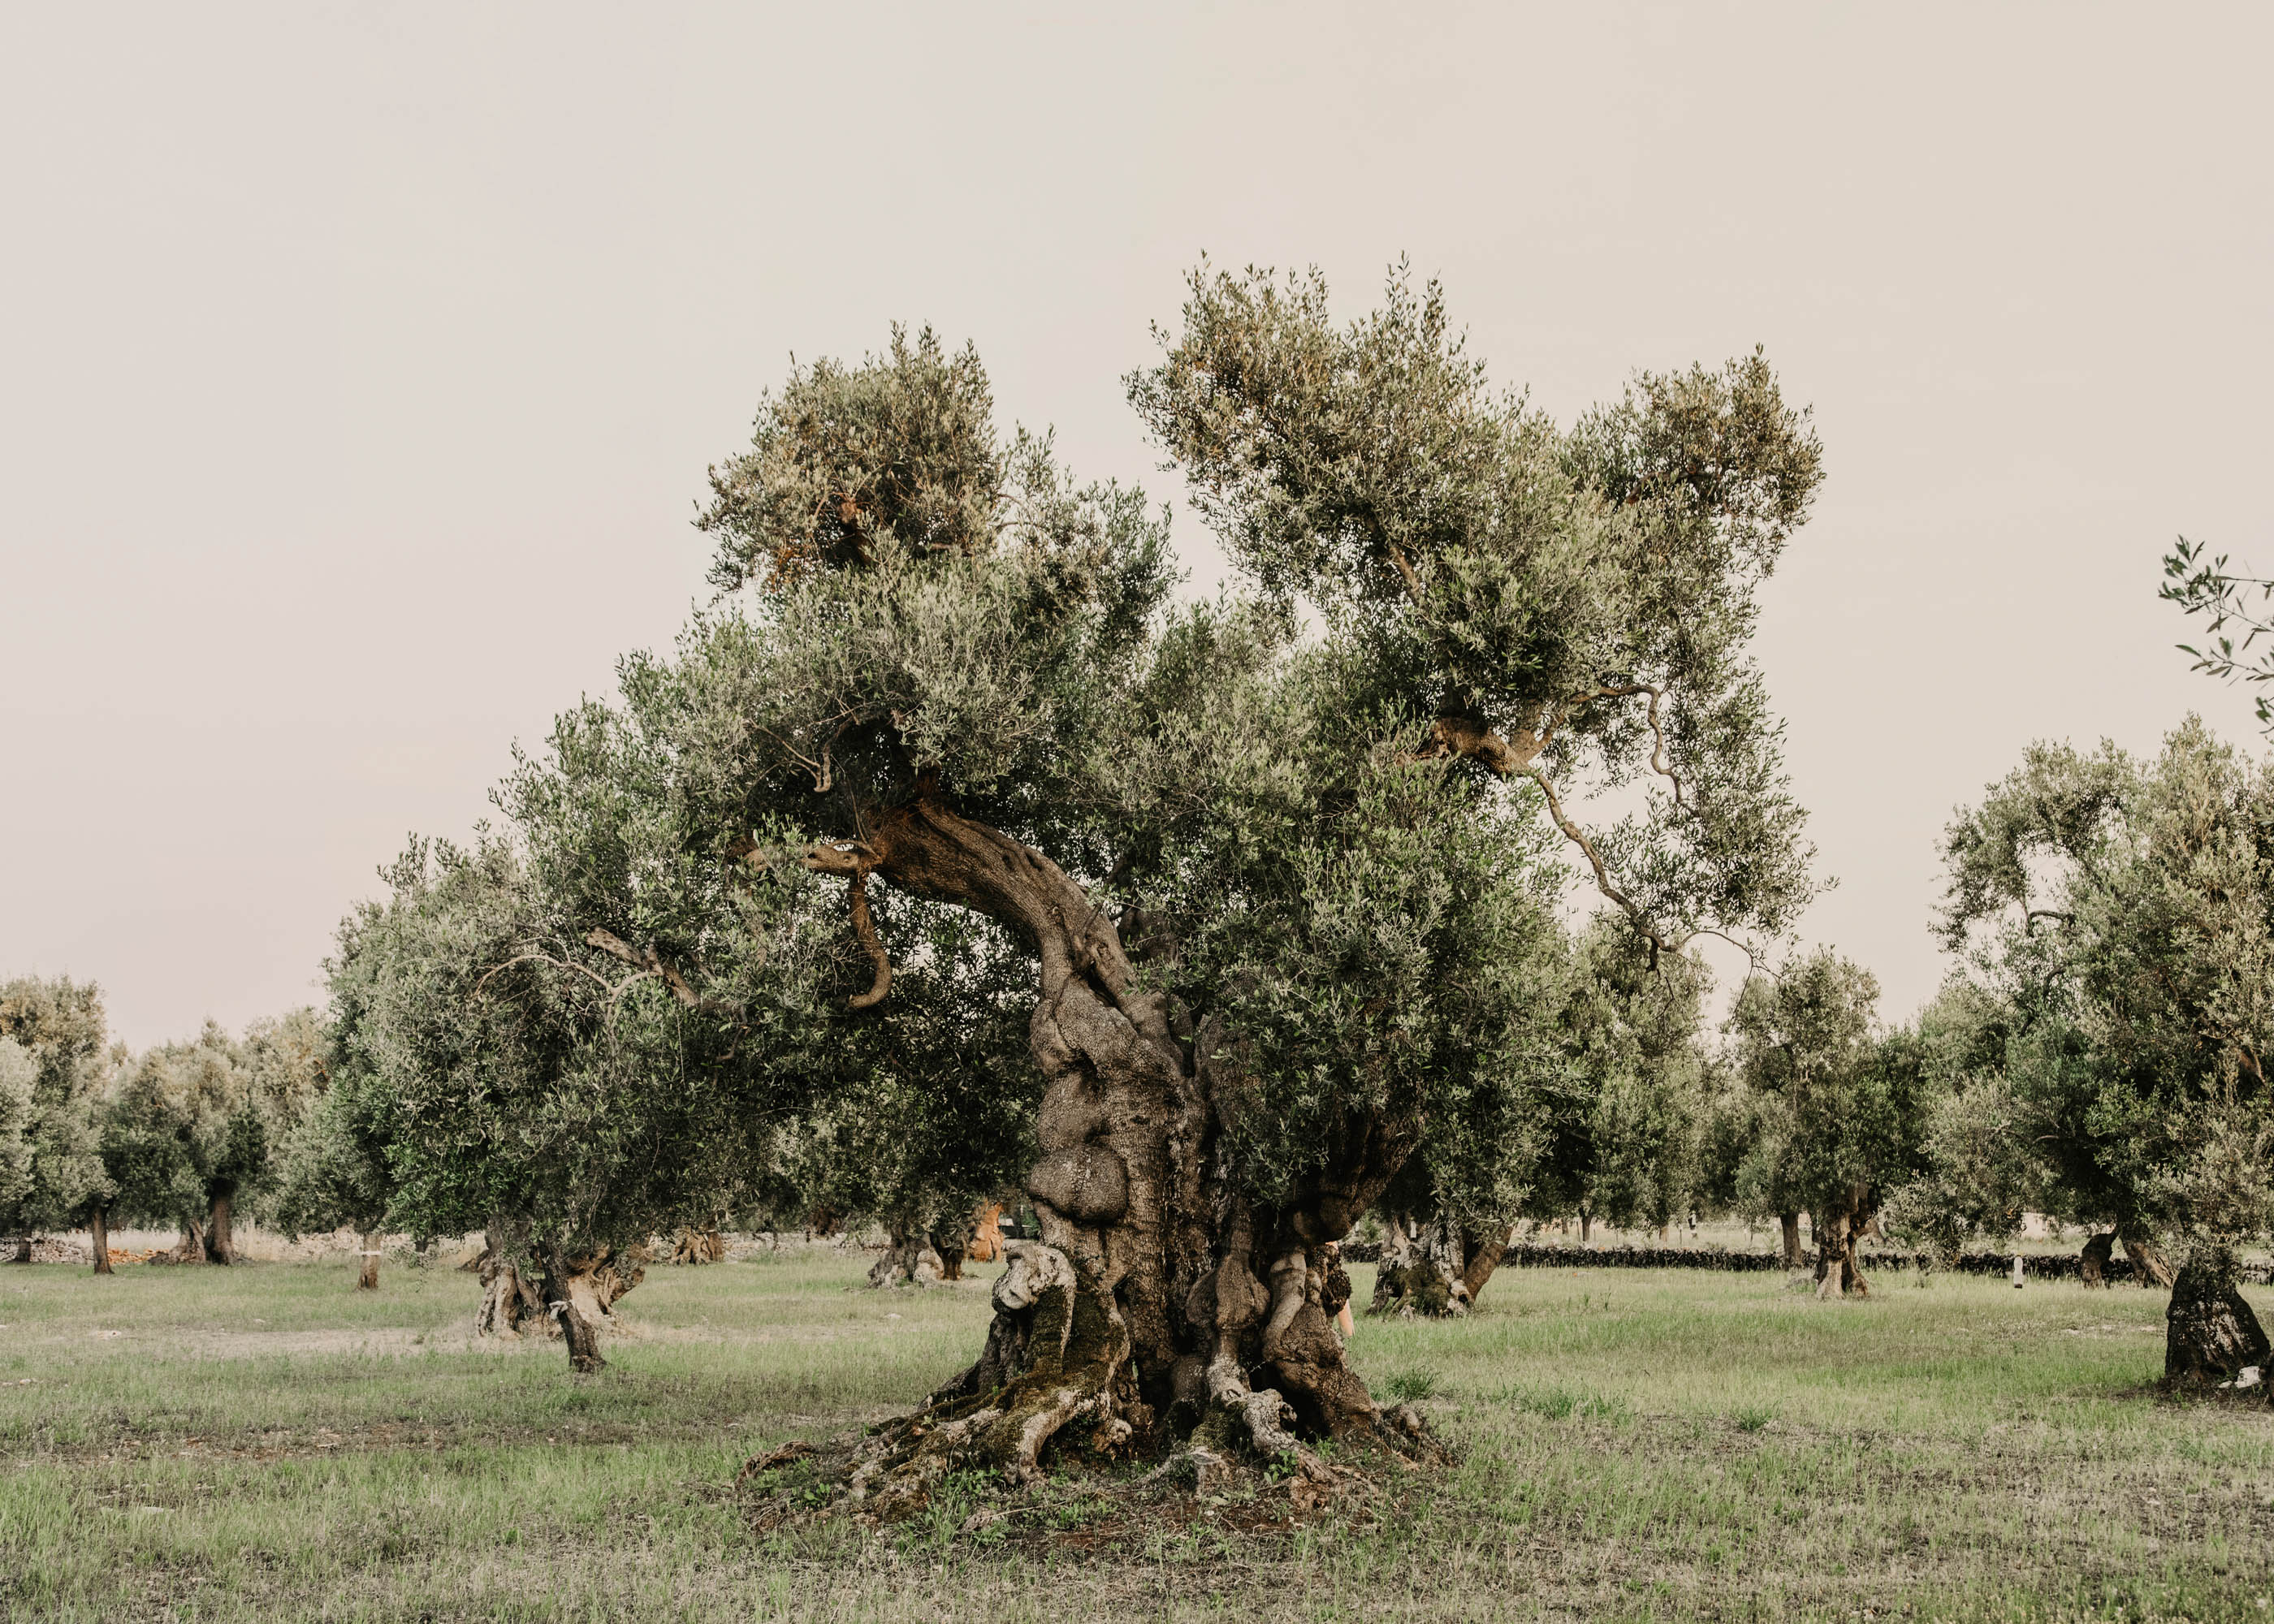 #editorial #italy #puglia #openhouse #town #ostuni #olive #countryside